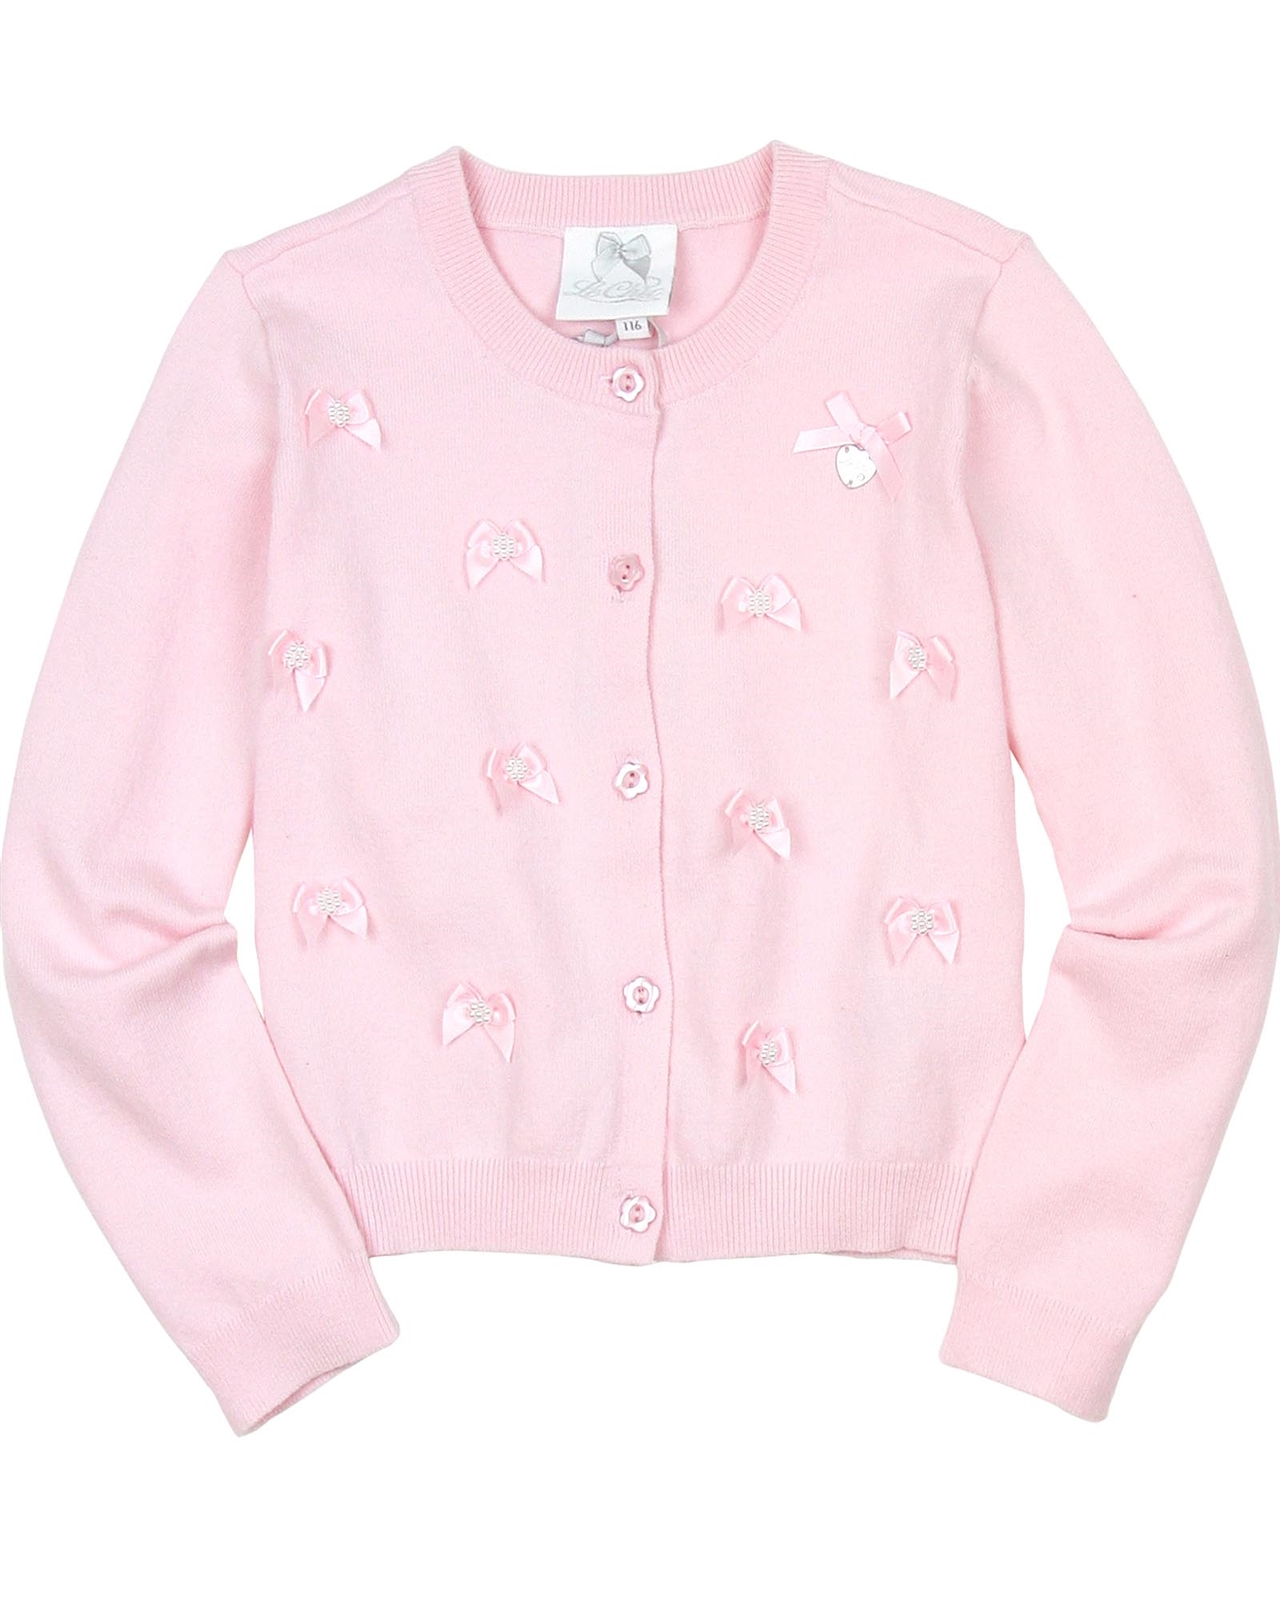 Le Chic Girls Knit Ajour Cardigan Sizes 4-12